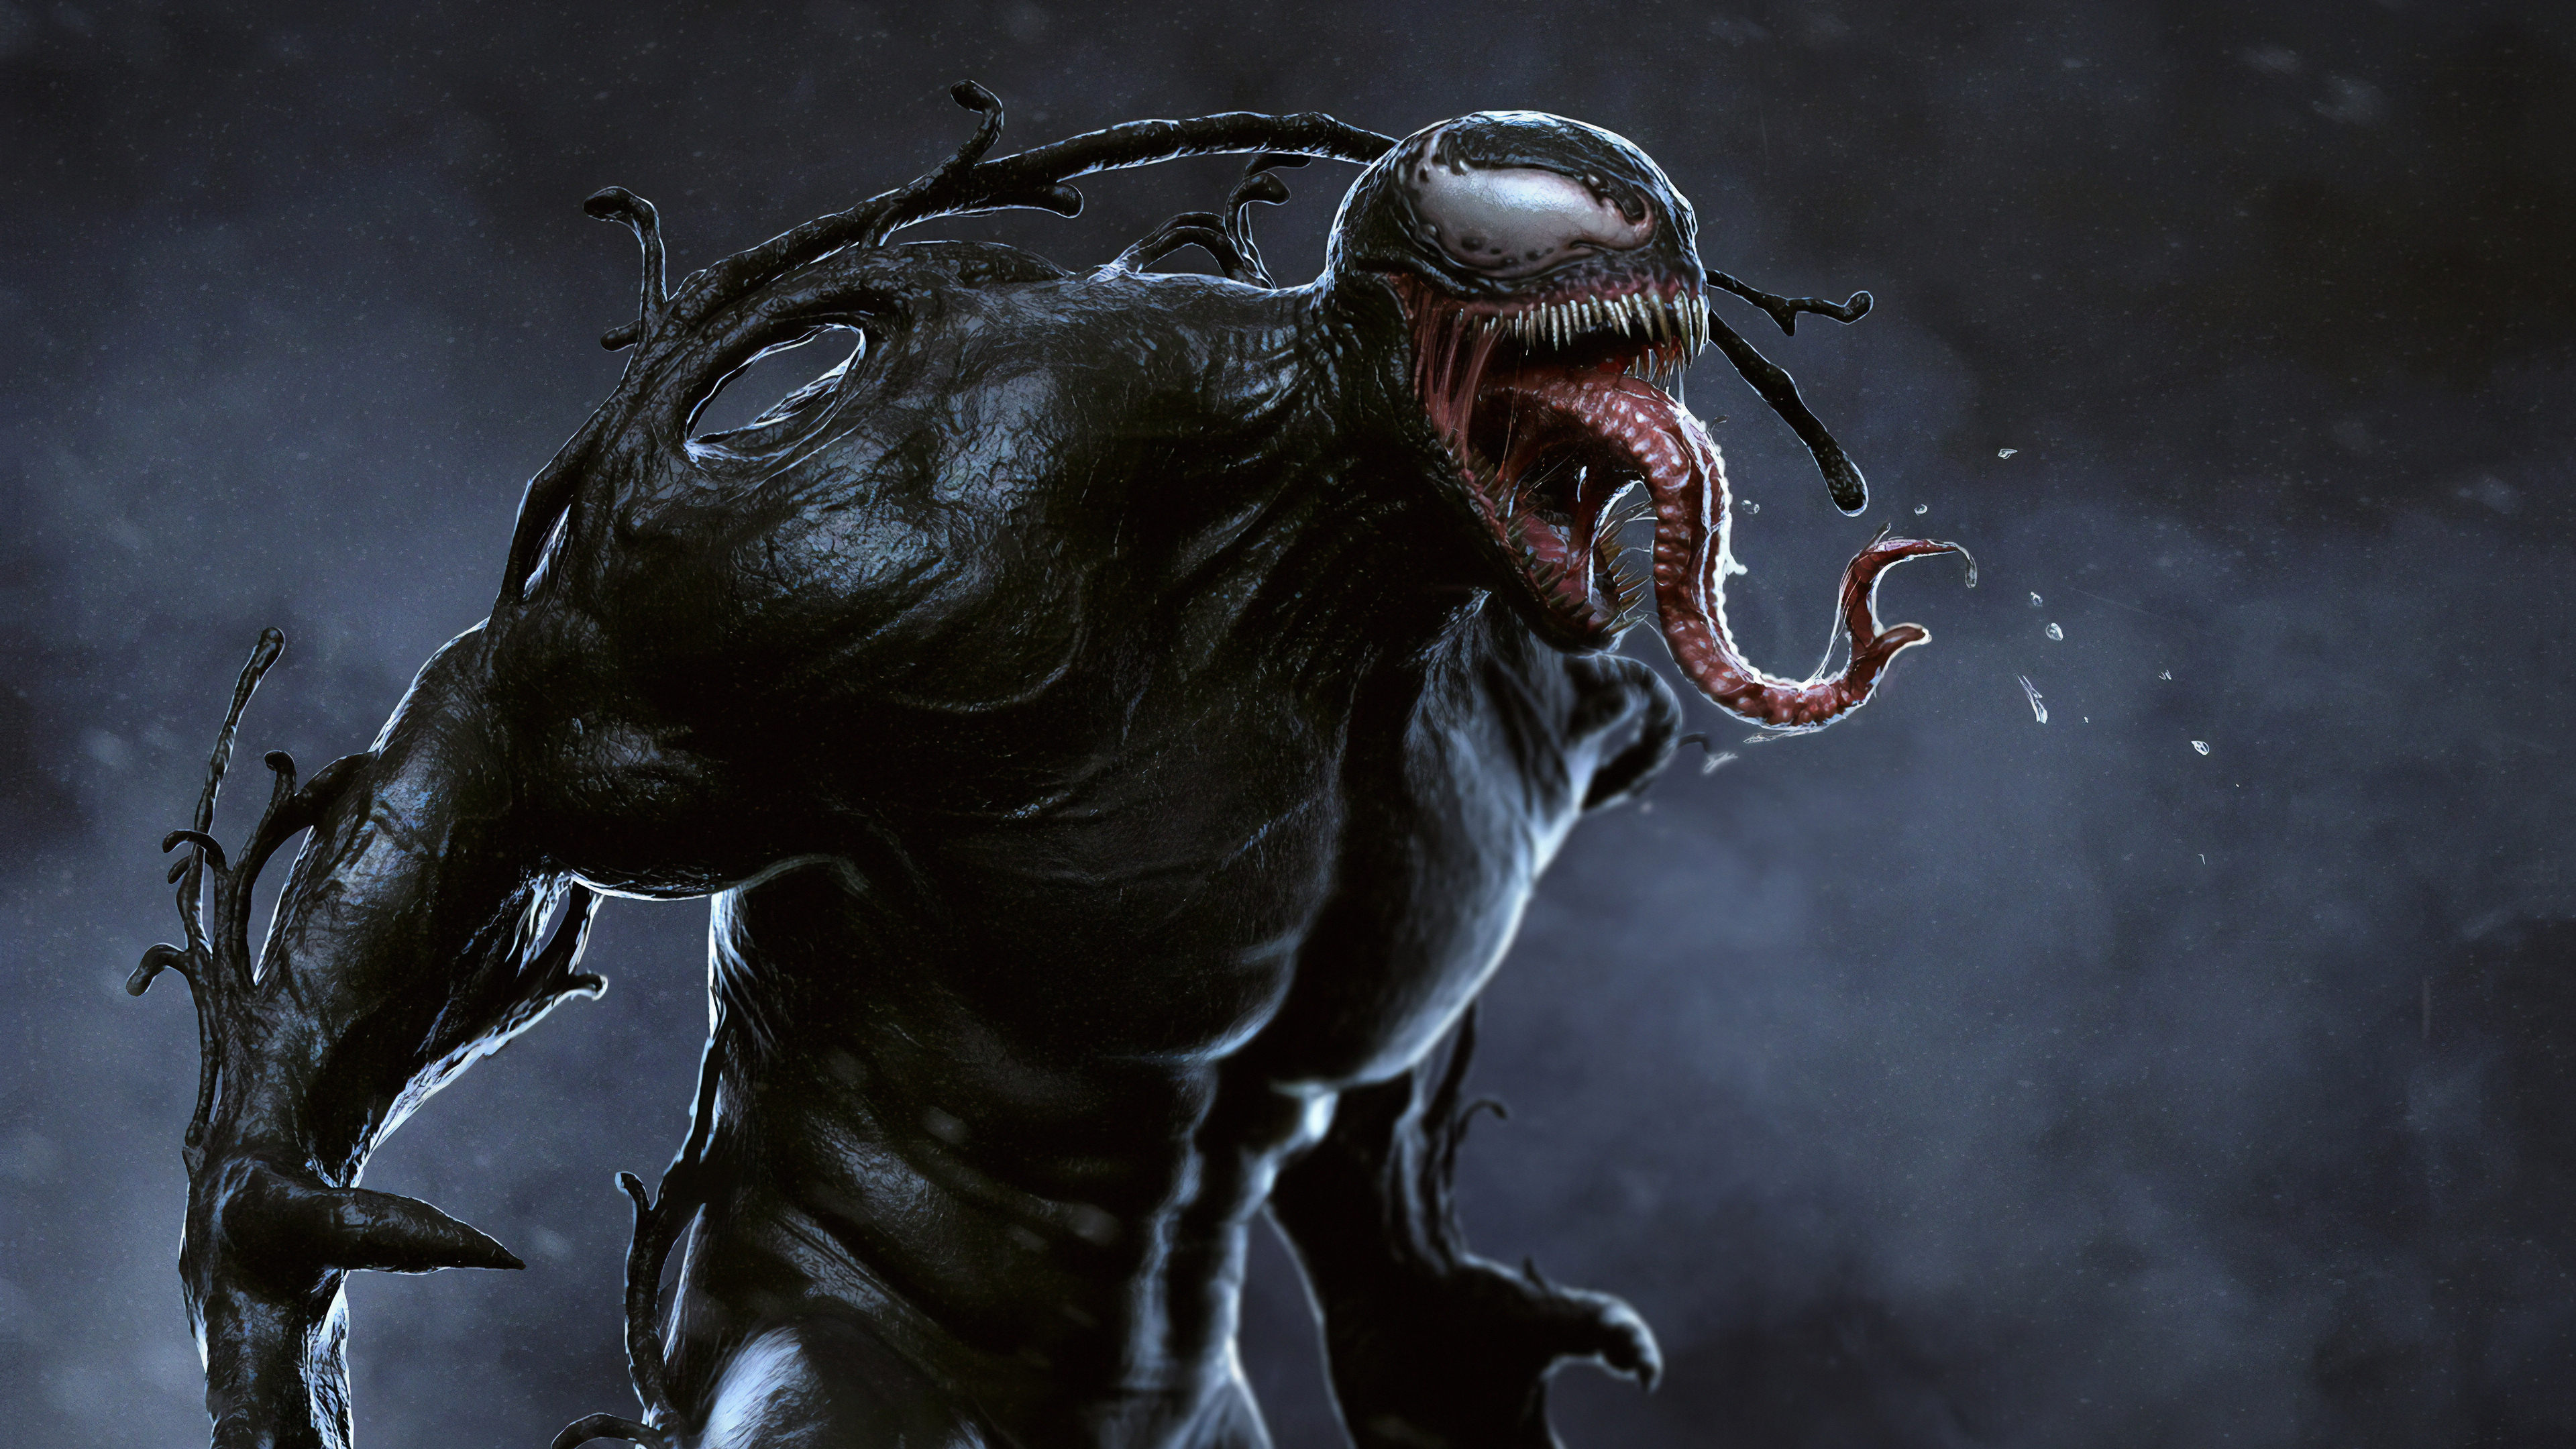 venom bad 1570394381 - Venom Bad - Venom wallpapers, superheroes wallpapers, hd-wallpapers, digital art wallpapers, artwork wallpapers, 4k-wallpapers